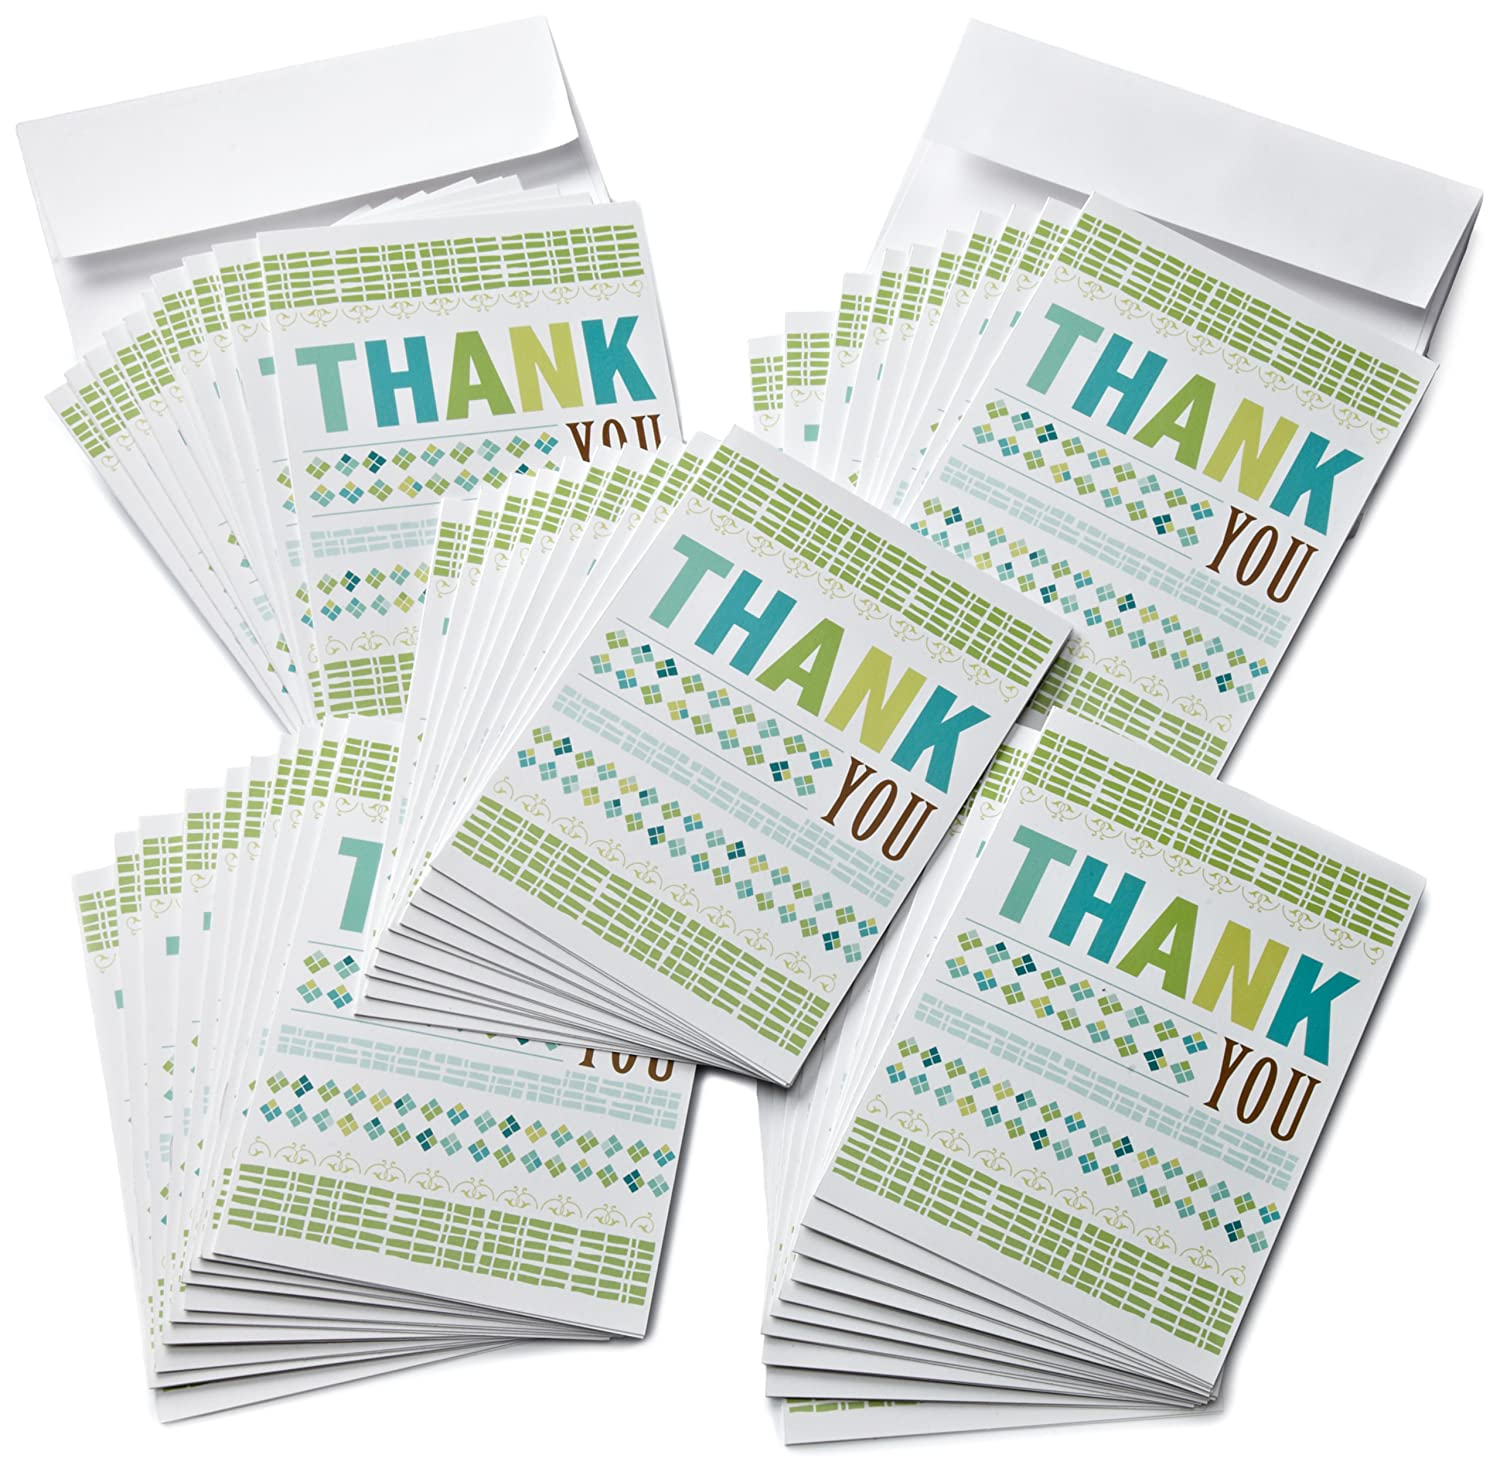 Amazon.com $5 Gift Cards, Pack of 50 with Greeting Cards (Thank You Design)